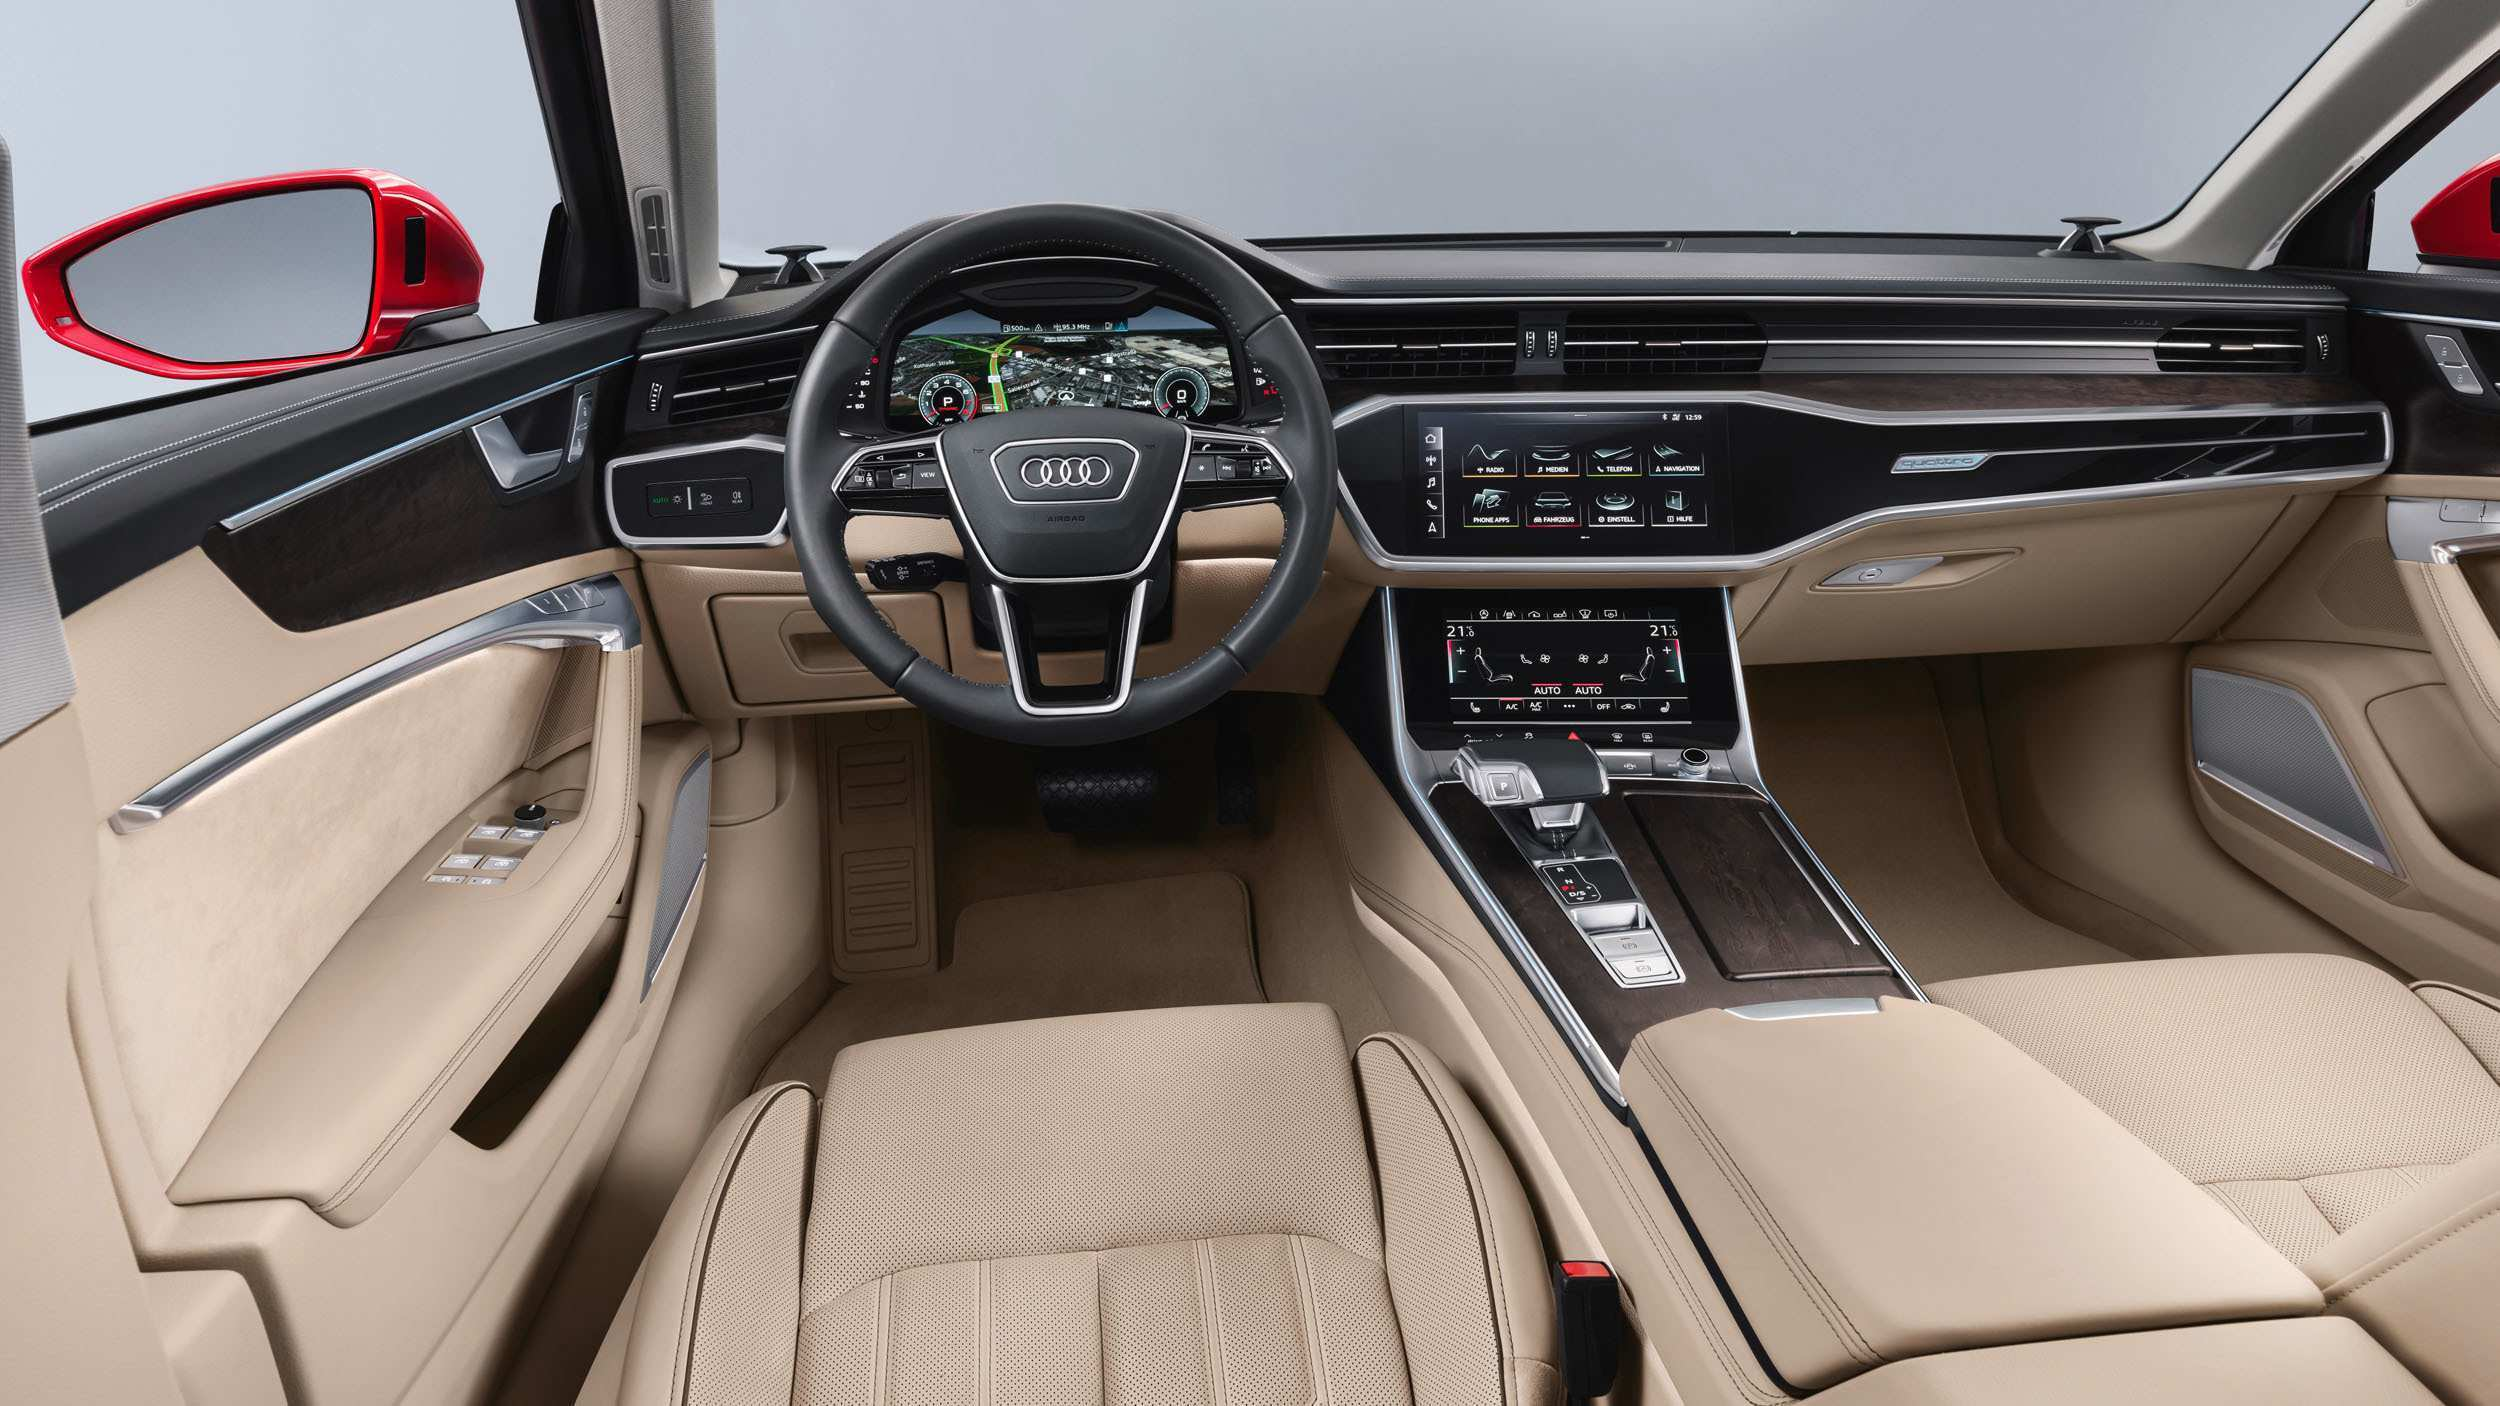 12 Concept of 2019 Audi A6 Release Date Usa Research New for 2019 Audi A6 Release Date Usa